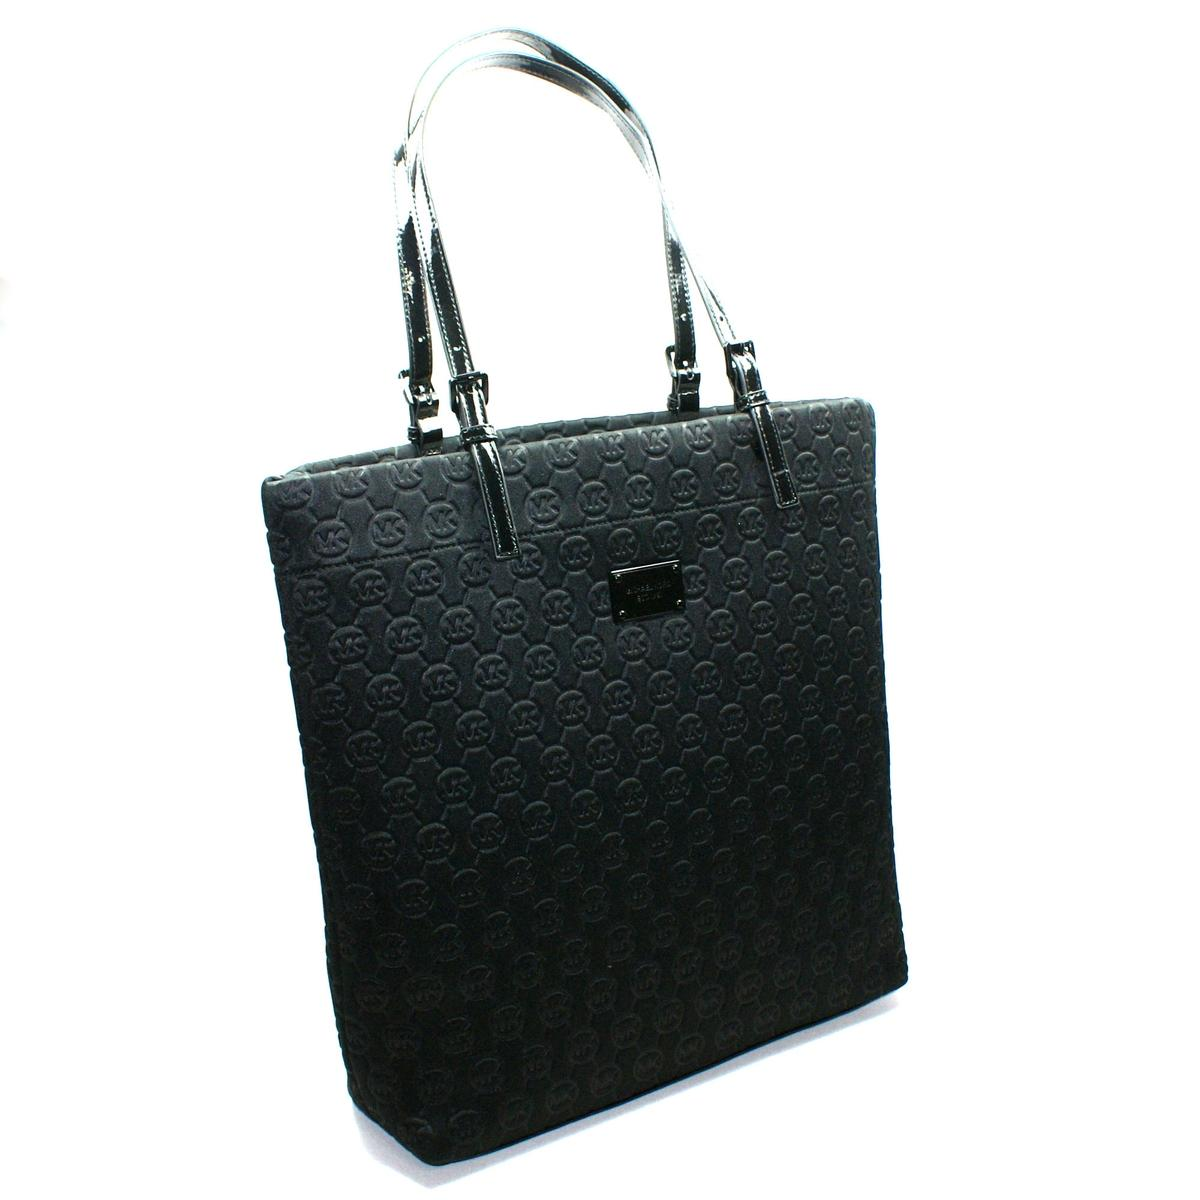 b5a26d55b1ccfb Home · Michael Kors · Neoprene Black Jet Set Tote Bag. CLICK THUMBNAIL TO  ZOOM. Found ...